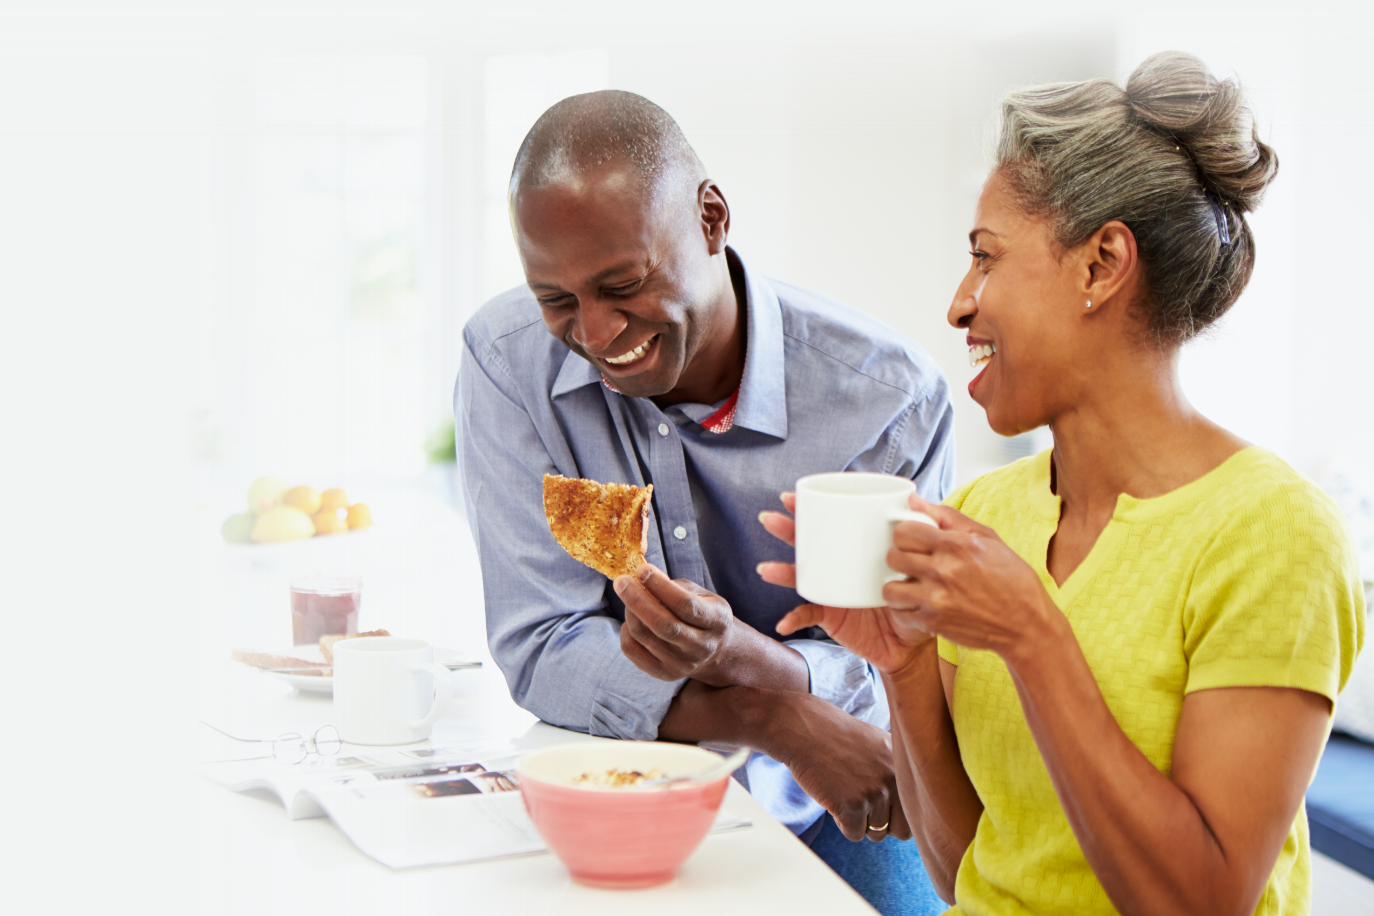 A couple in their 50s are laughing and smiling over breakfast, as they have found a great community and answers on the Fixodent website.